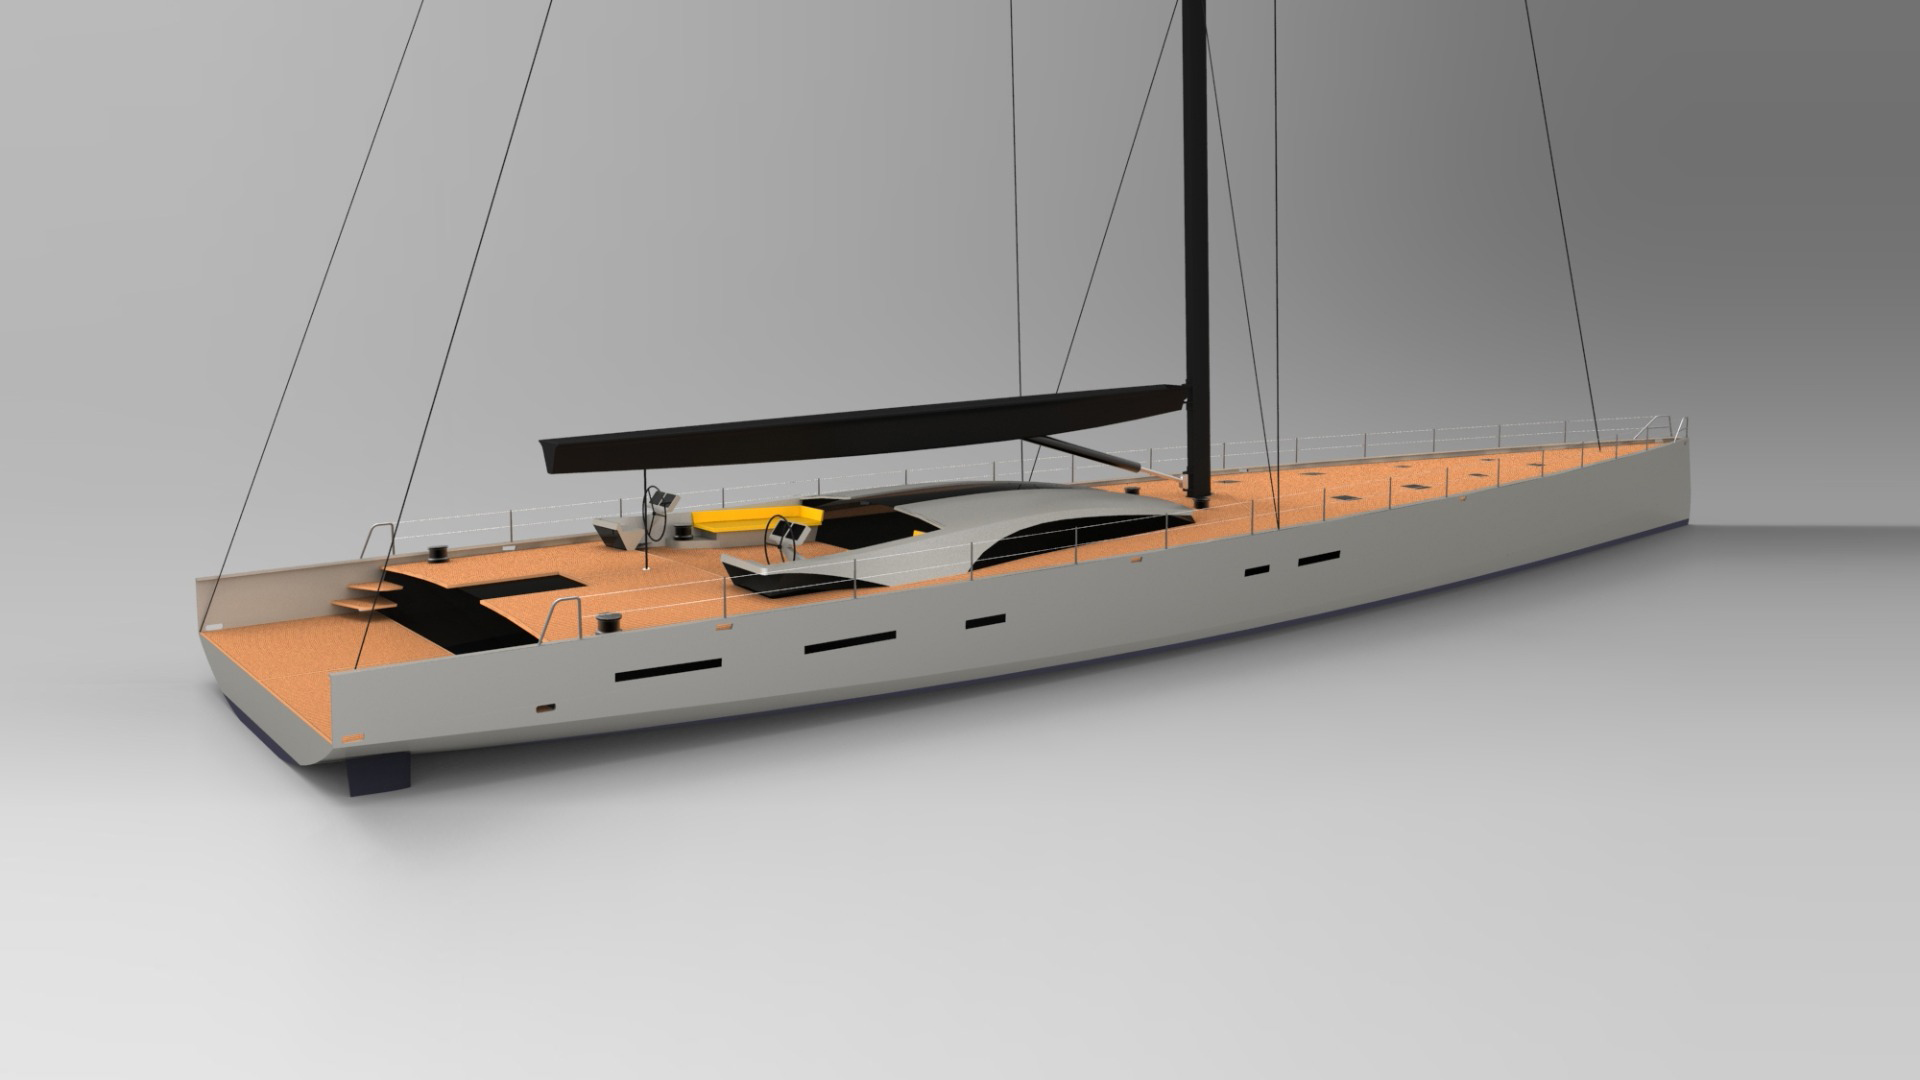 This is a concept design for blue water racer cruiser with a raised deck saloon that maintains the sleek appearance of a Mediterranean day sailer. The sailplan and deck layout are optimised for the ORCsy superyacht racing rule and the yacht is designed for an owner to cruise and take part in bucket and racing and superyacht regattas.